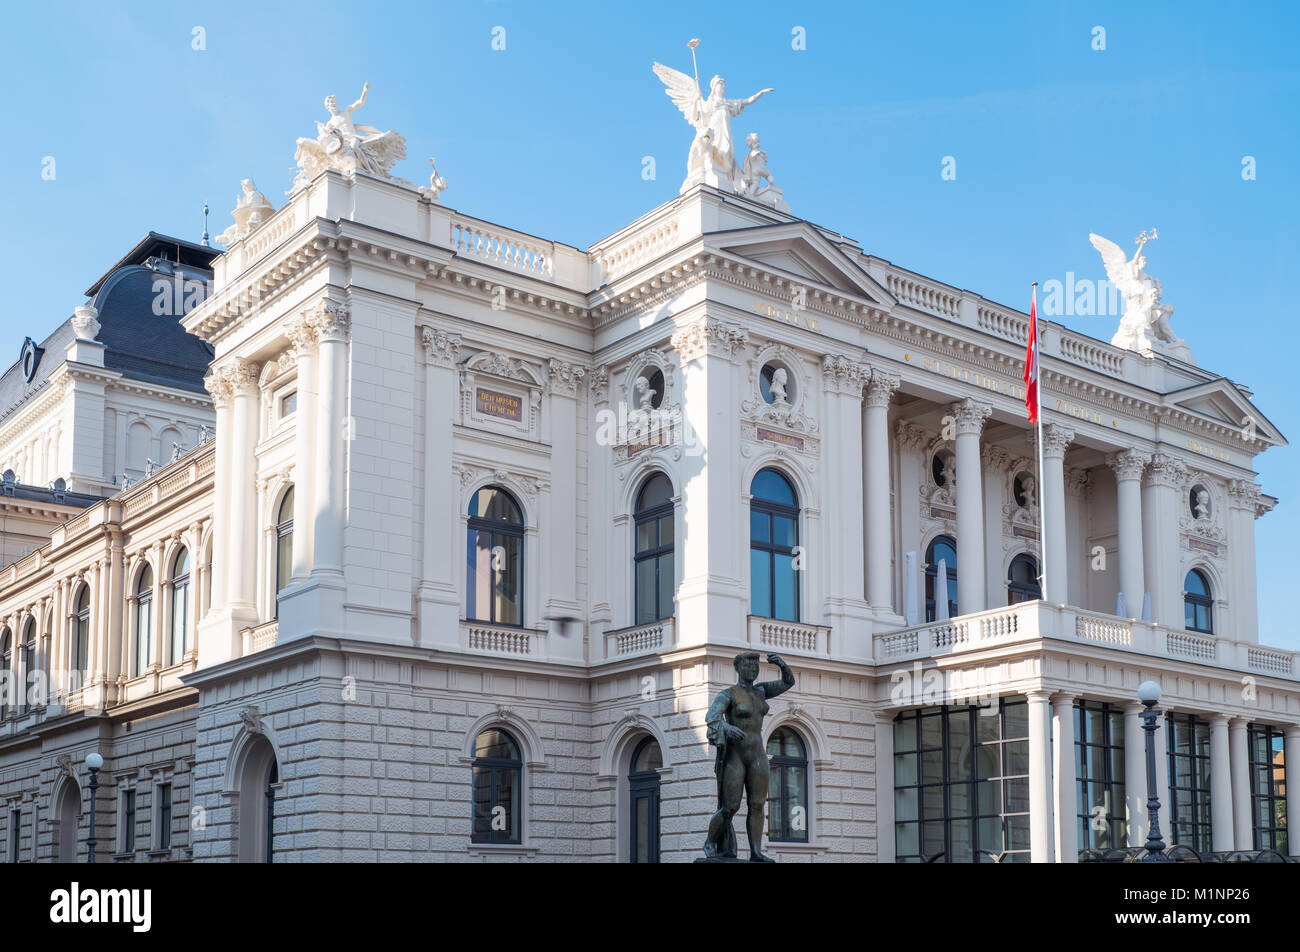 Zurich, Switzerland, the Opernhaus theater - Stock Image